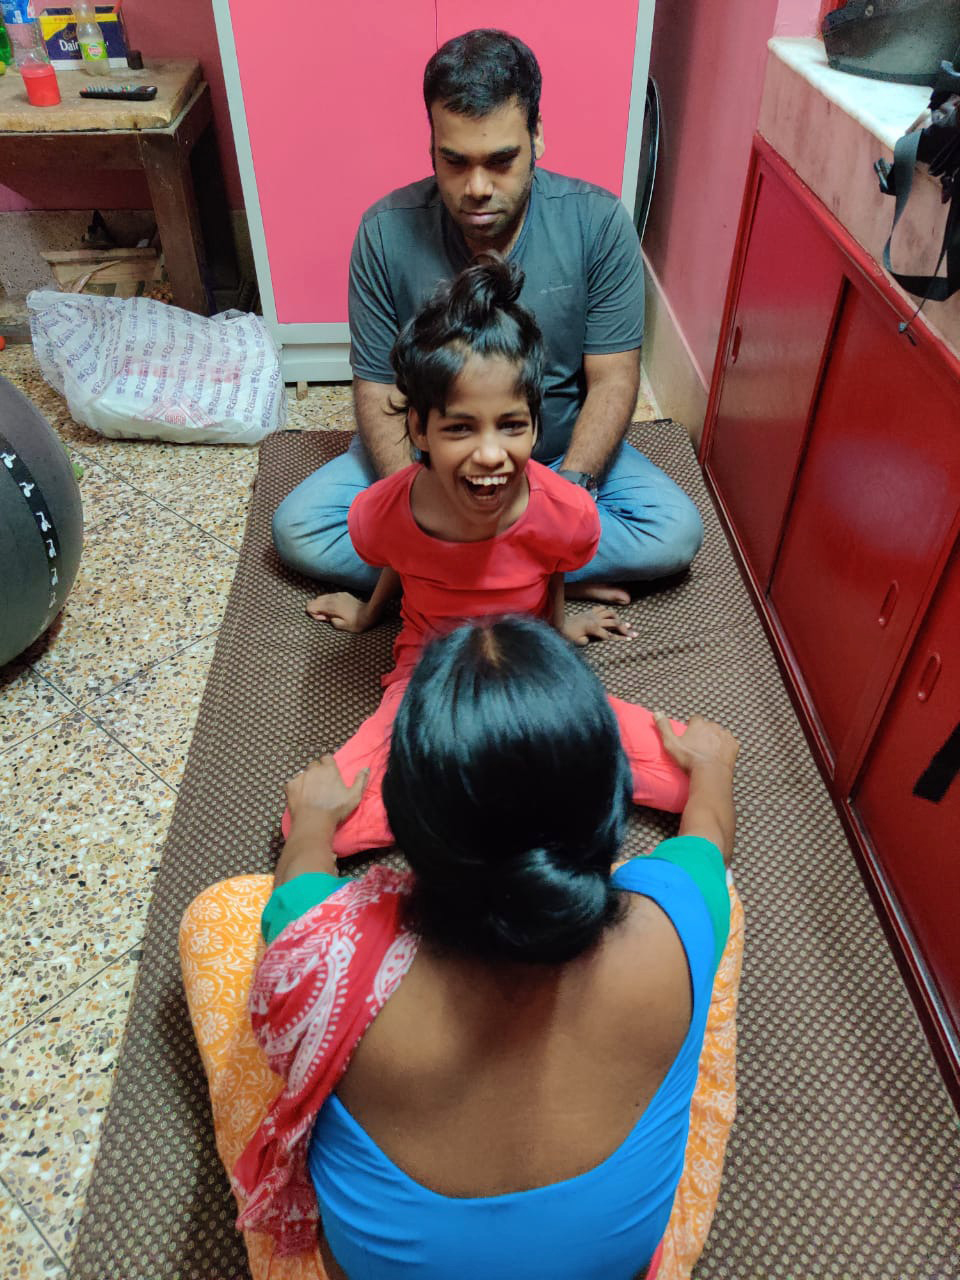 shuktara - Guria at Lula Bari doing physio